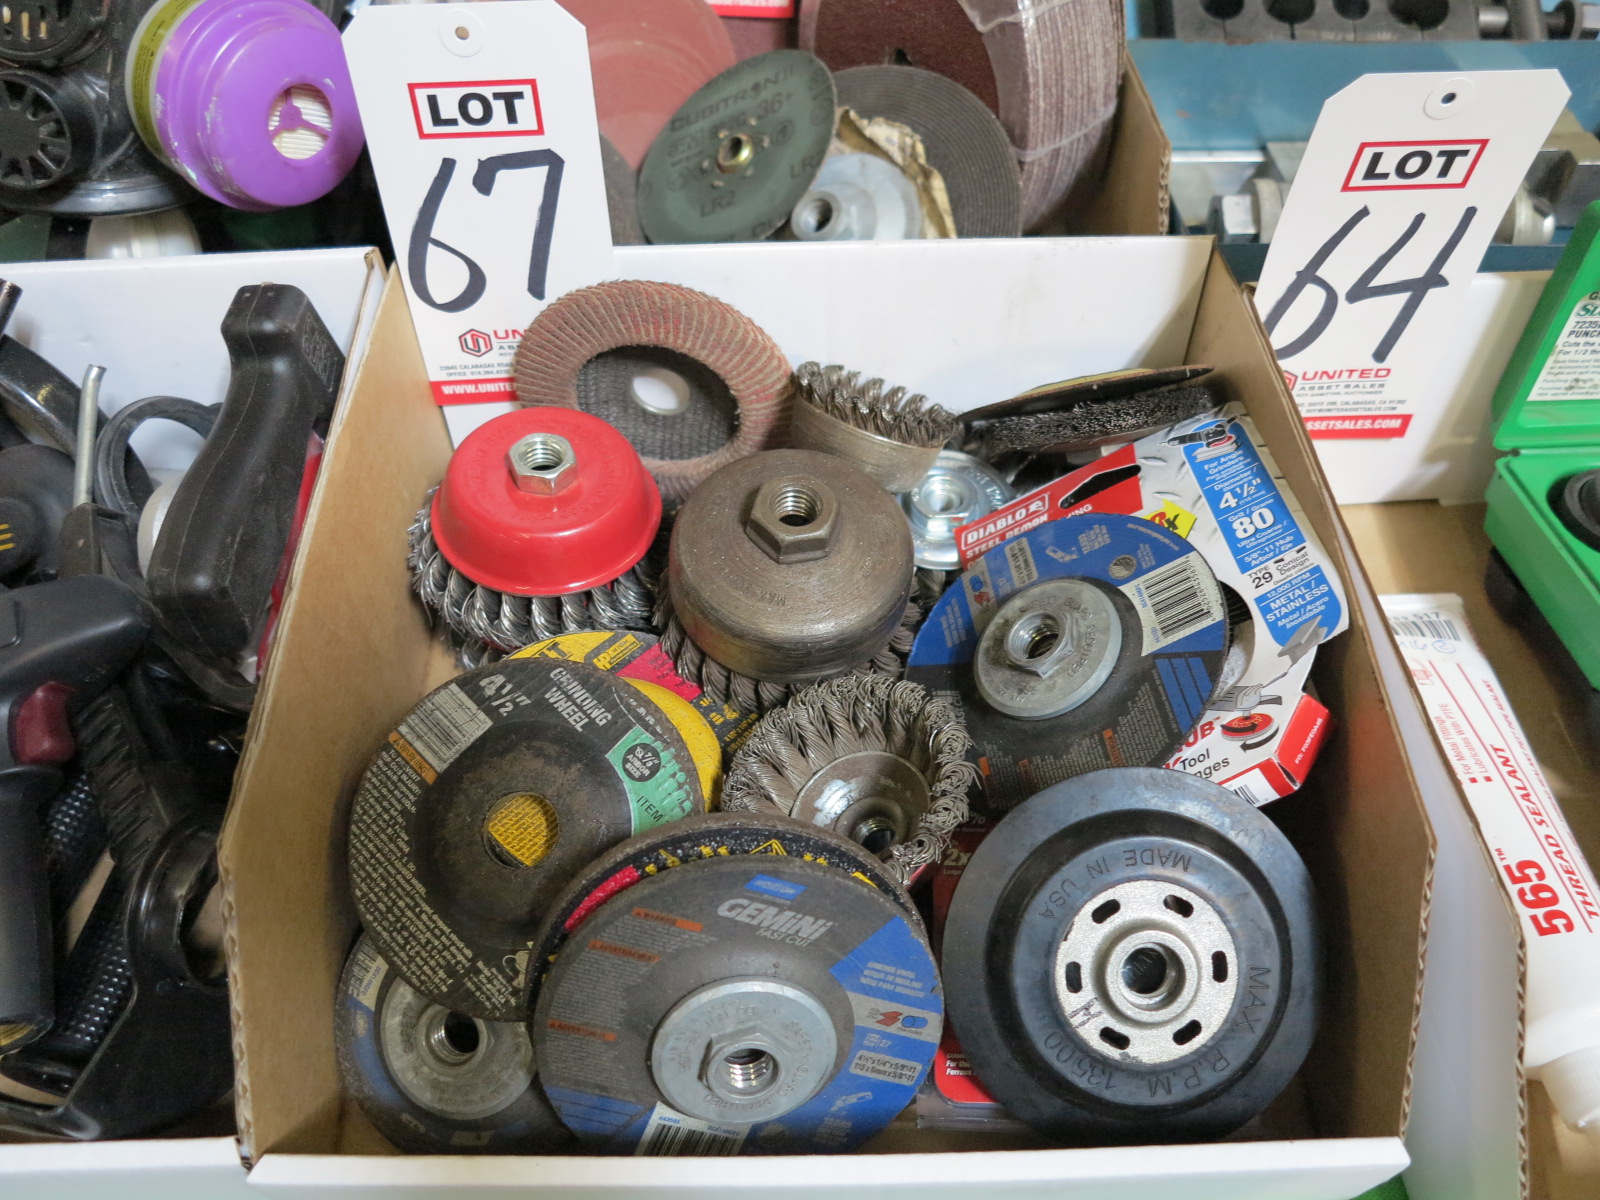 LOT - ANGLE GRINDER GRINDING WHEELS AND CUP BRUSH WIRE WHEELS